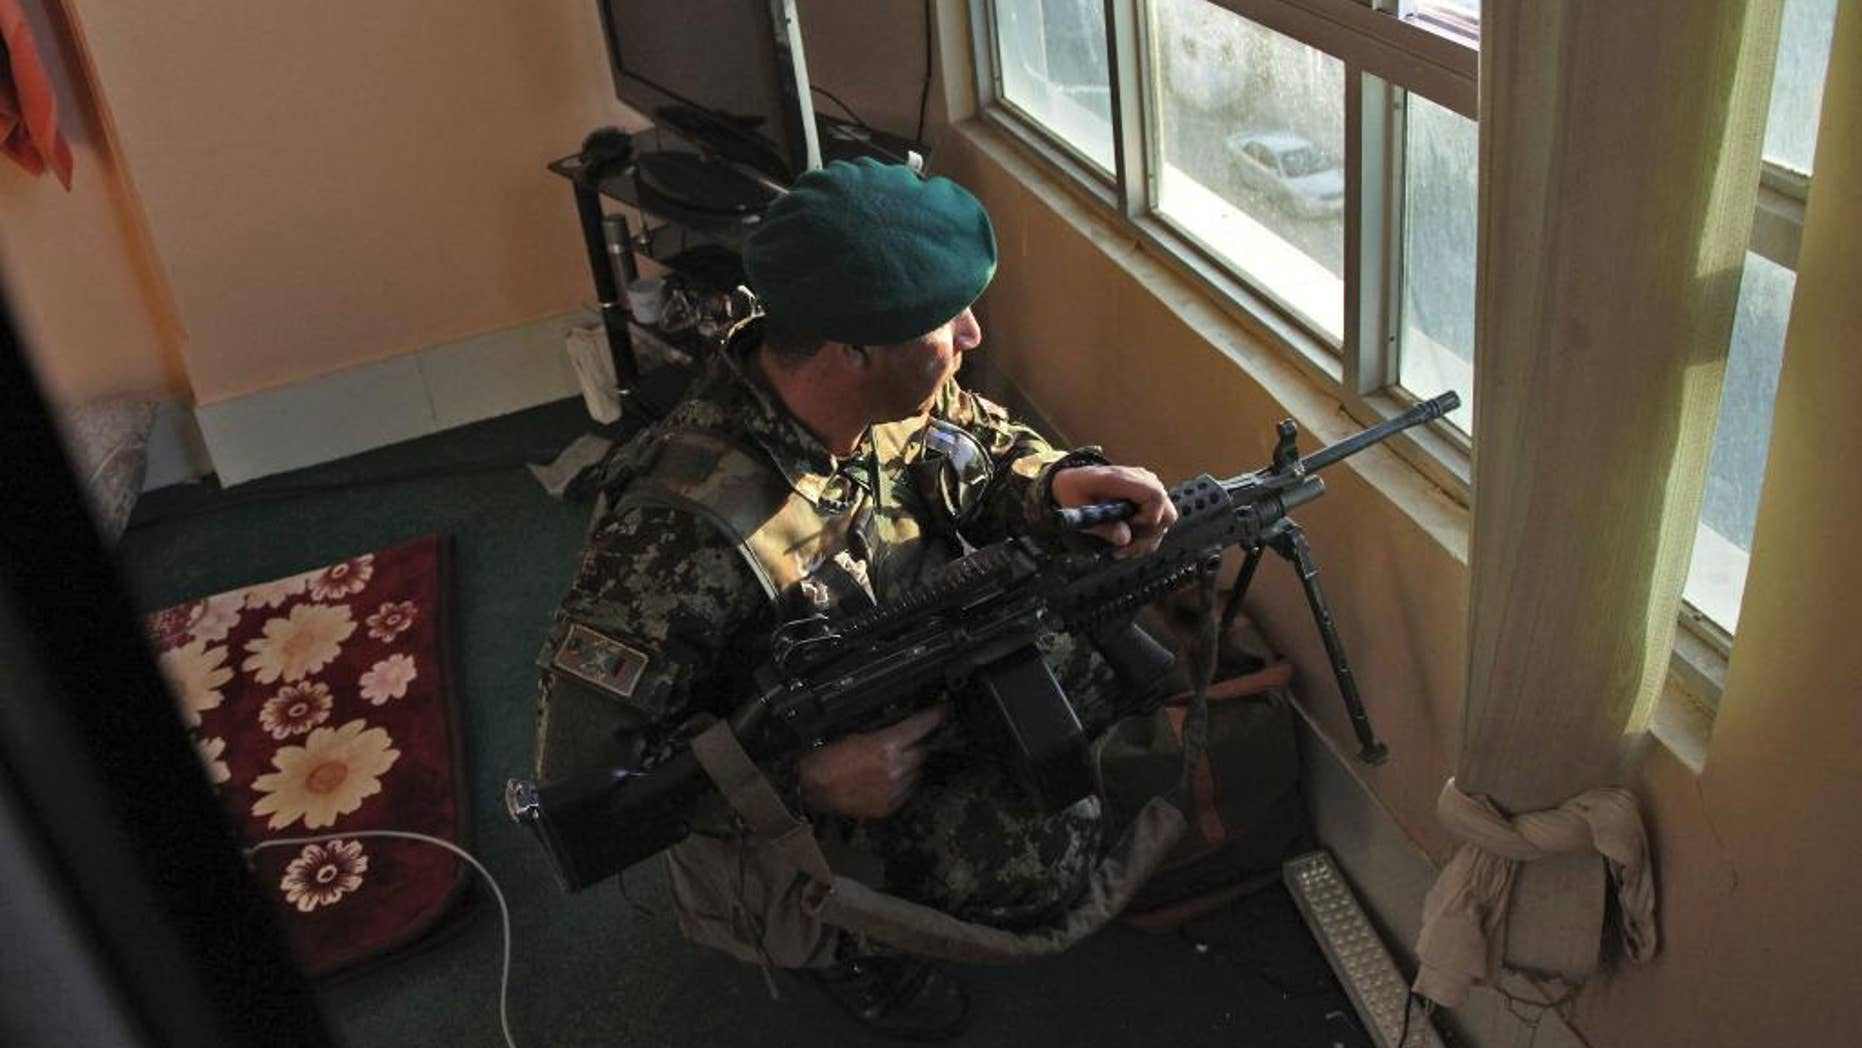 An Afghanistan's National Army (ANA) soldier takes up position near the site of a clash between insurgents and security forces at the Indian Consulate in Herat, Afghanistan, Friday, May 23, 2014. Gunmen armed with machine guns and rocket-propelled grenades attacked the Indian Consulate in western Afghanistan's Herat province Friday, an assault that injured no diplomatic staff, police said. Indian officials said there had been a threat against its diplomats in Afghanistan, but gave no other details. (AP Photo/Hoshang Hashimi)